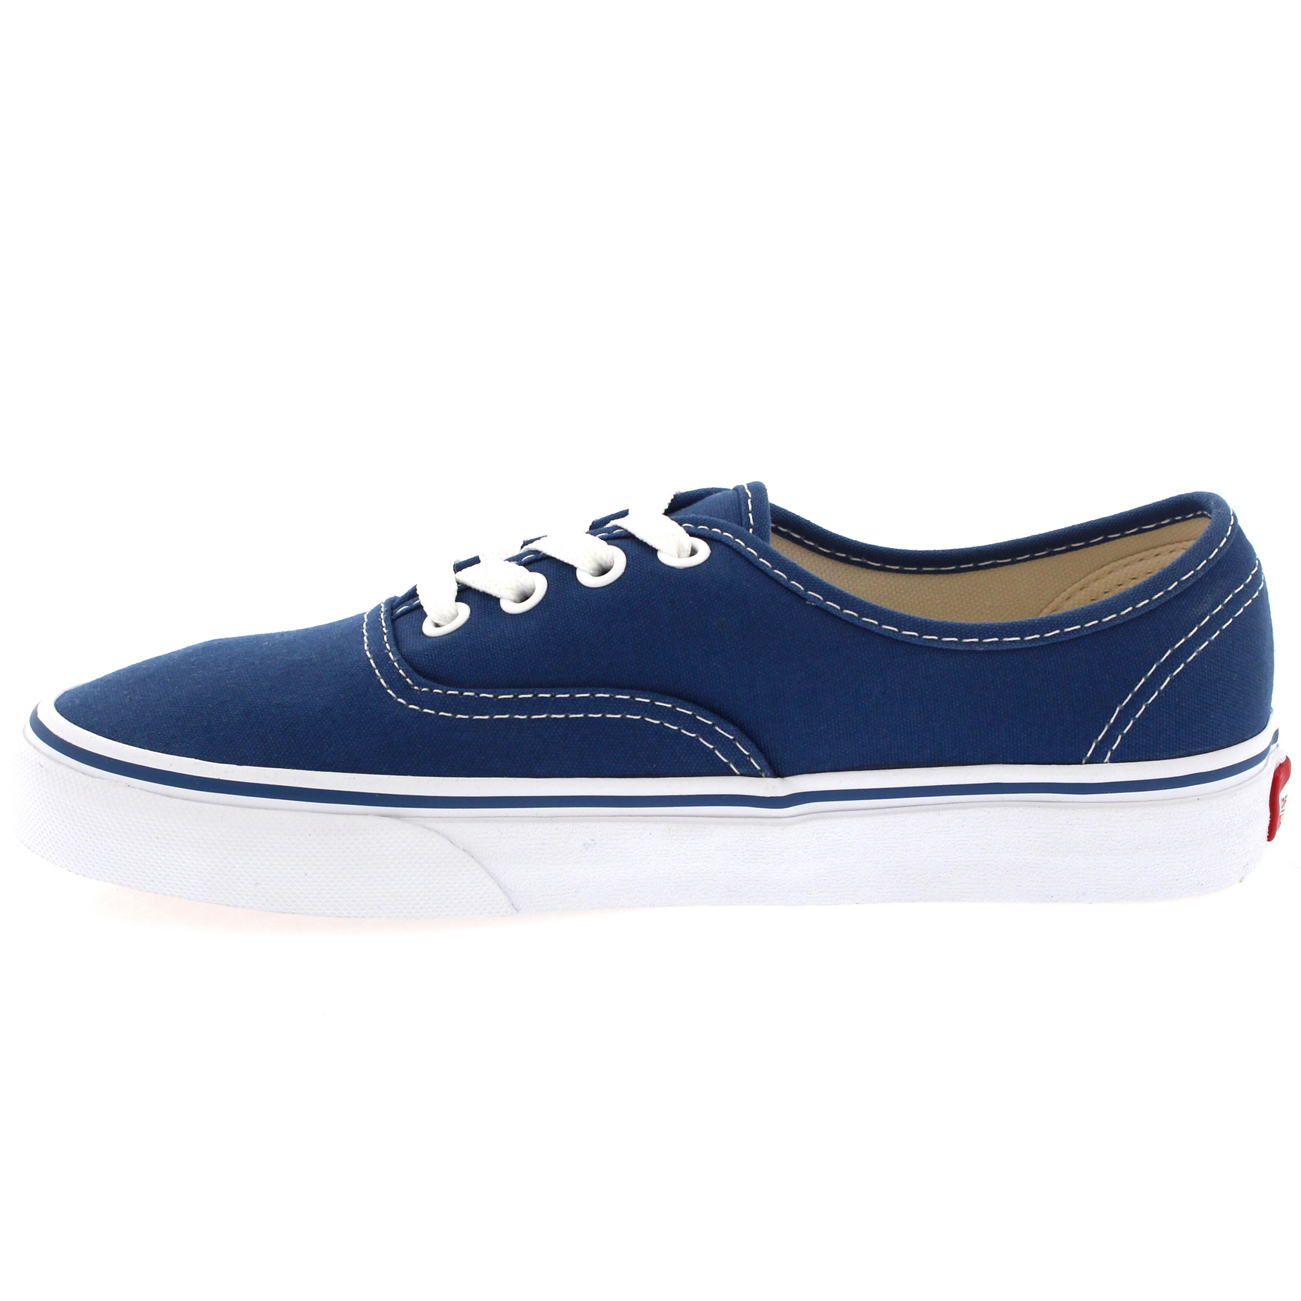 New Womens Lace Up Canvas Shoes Casual Flat Comfy Slip-On Sneakers Trainers Size. Unbranded. $ From China. Buy It Now. Free Shipping. SPONSORED. Womens Low Top Canvas Lace Up Muffled Candy Color Print Flower Shoes Breathable. Unbranded. $ From China. Buy It Now. Free Shipping. SPONSORED.